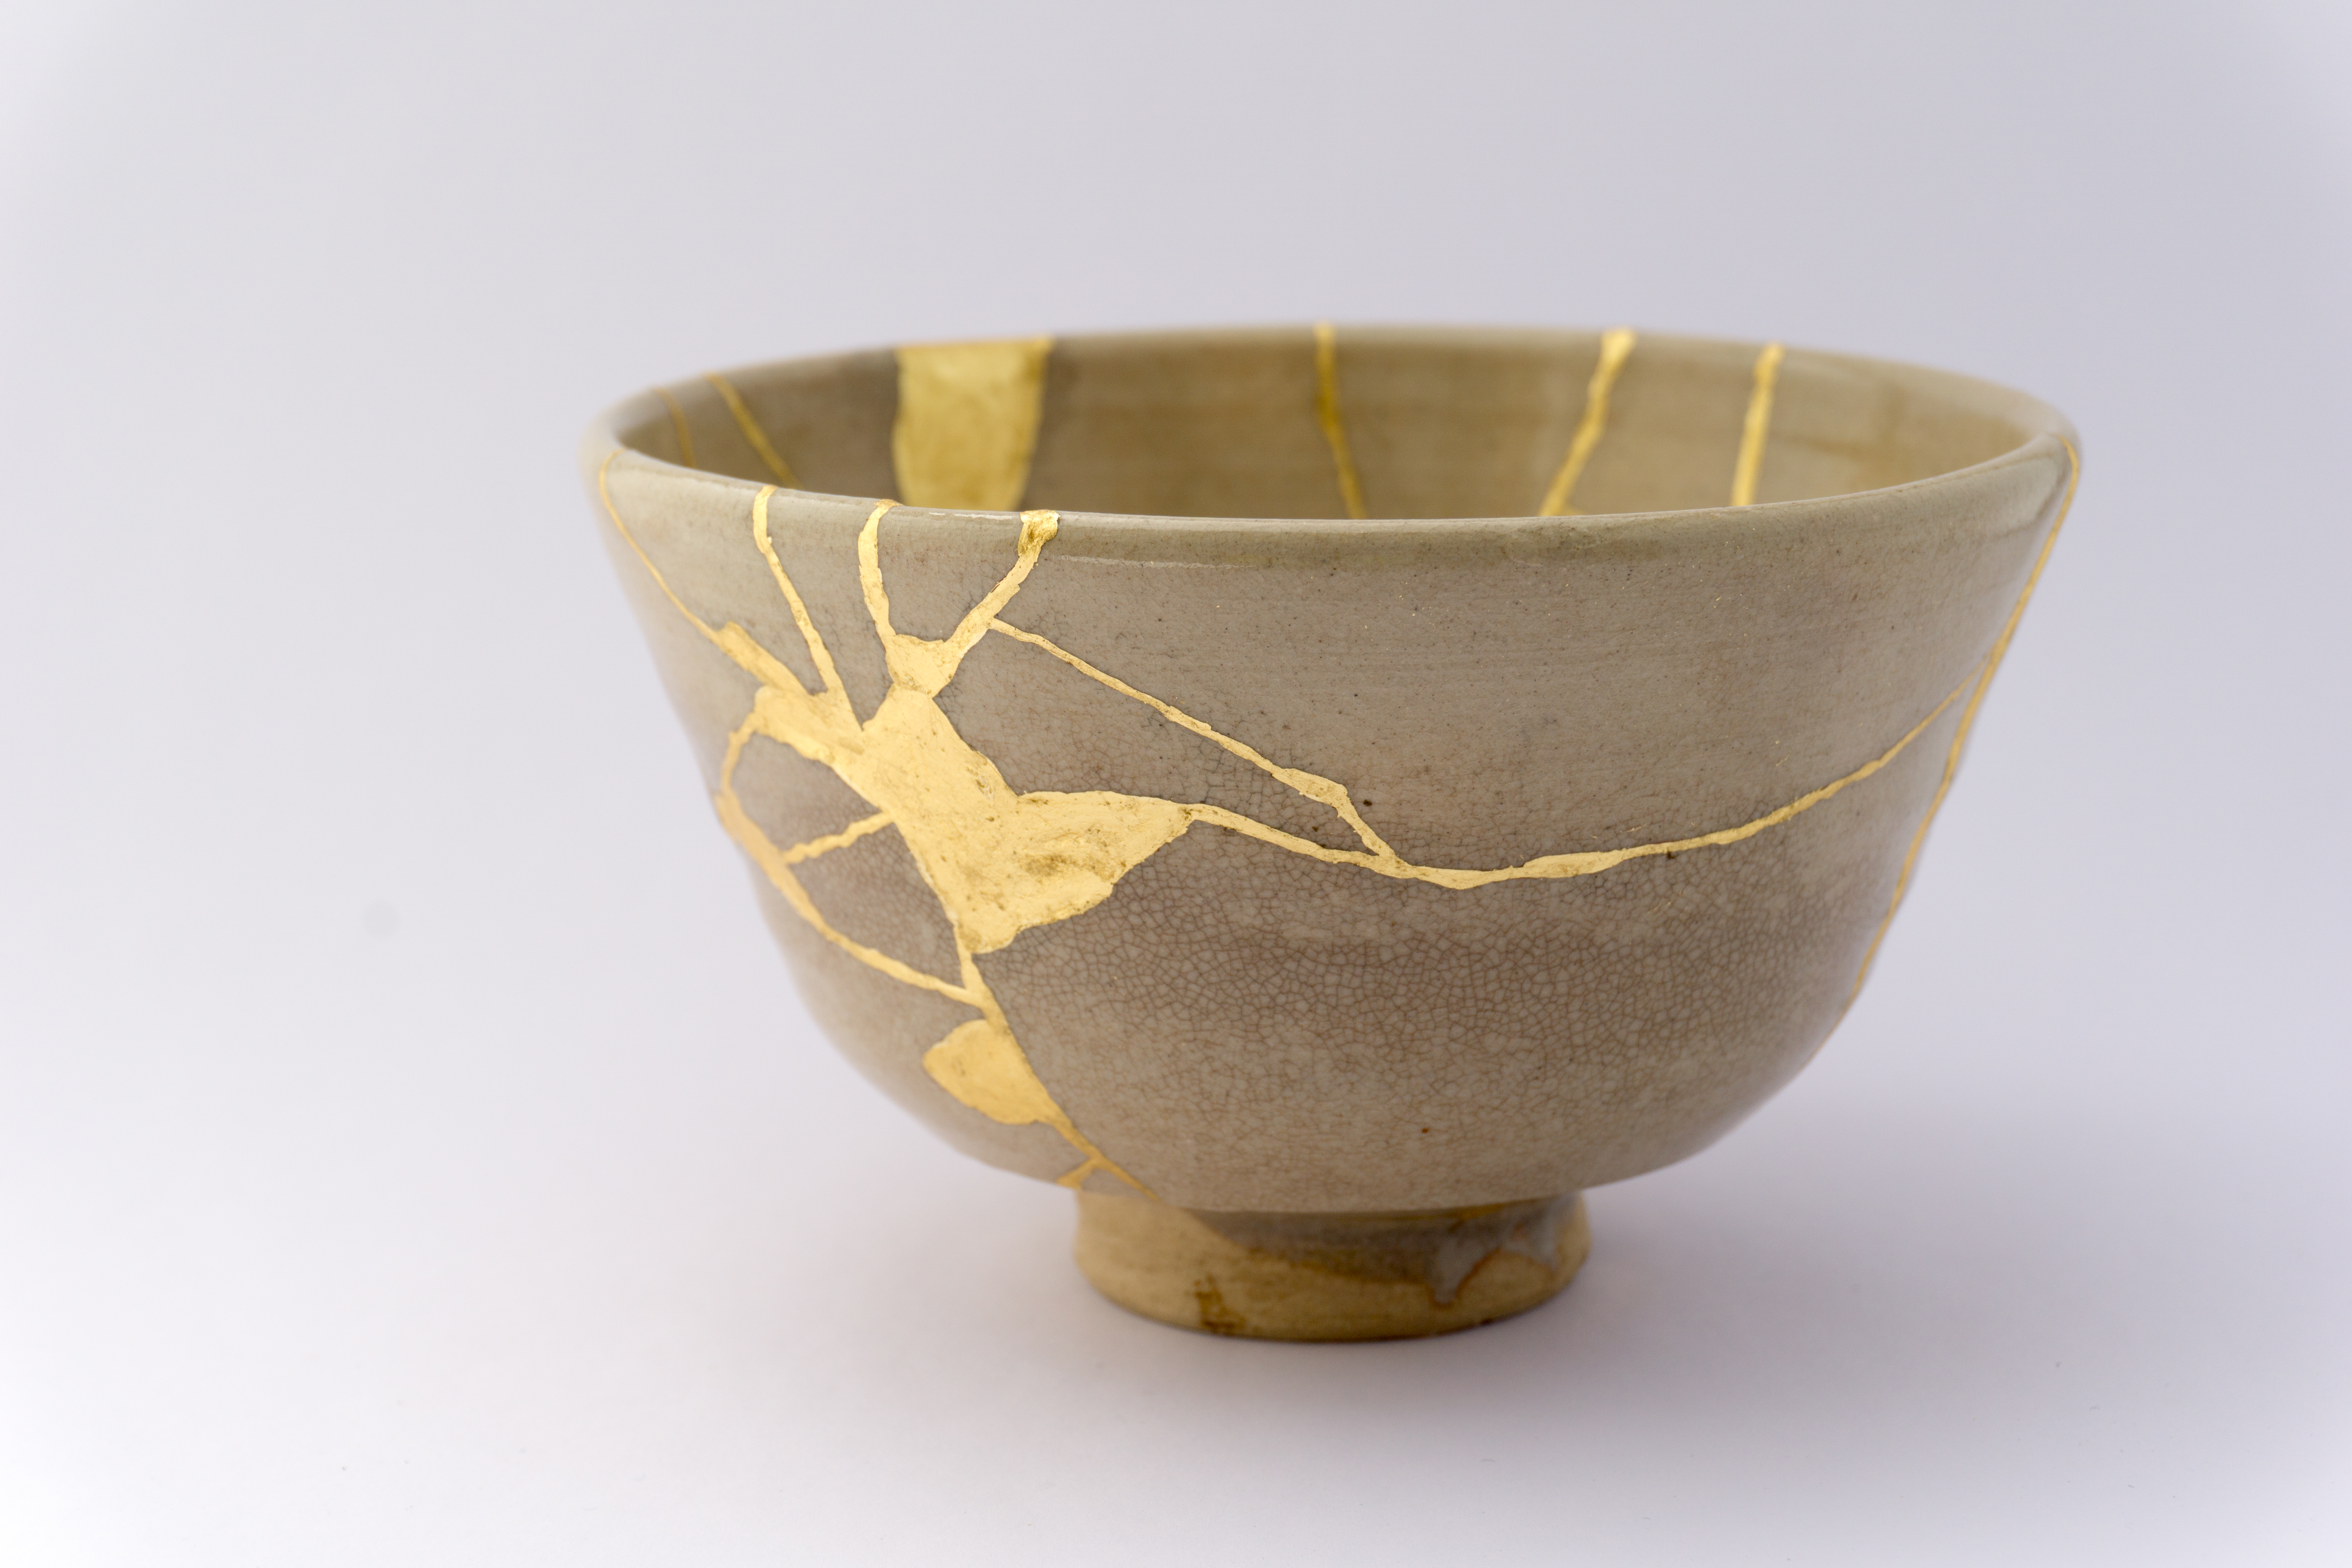 Old Japanese pottery restored with the antique Kintsugi restoration technique.